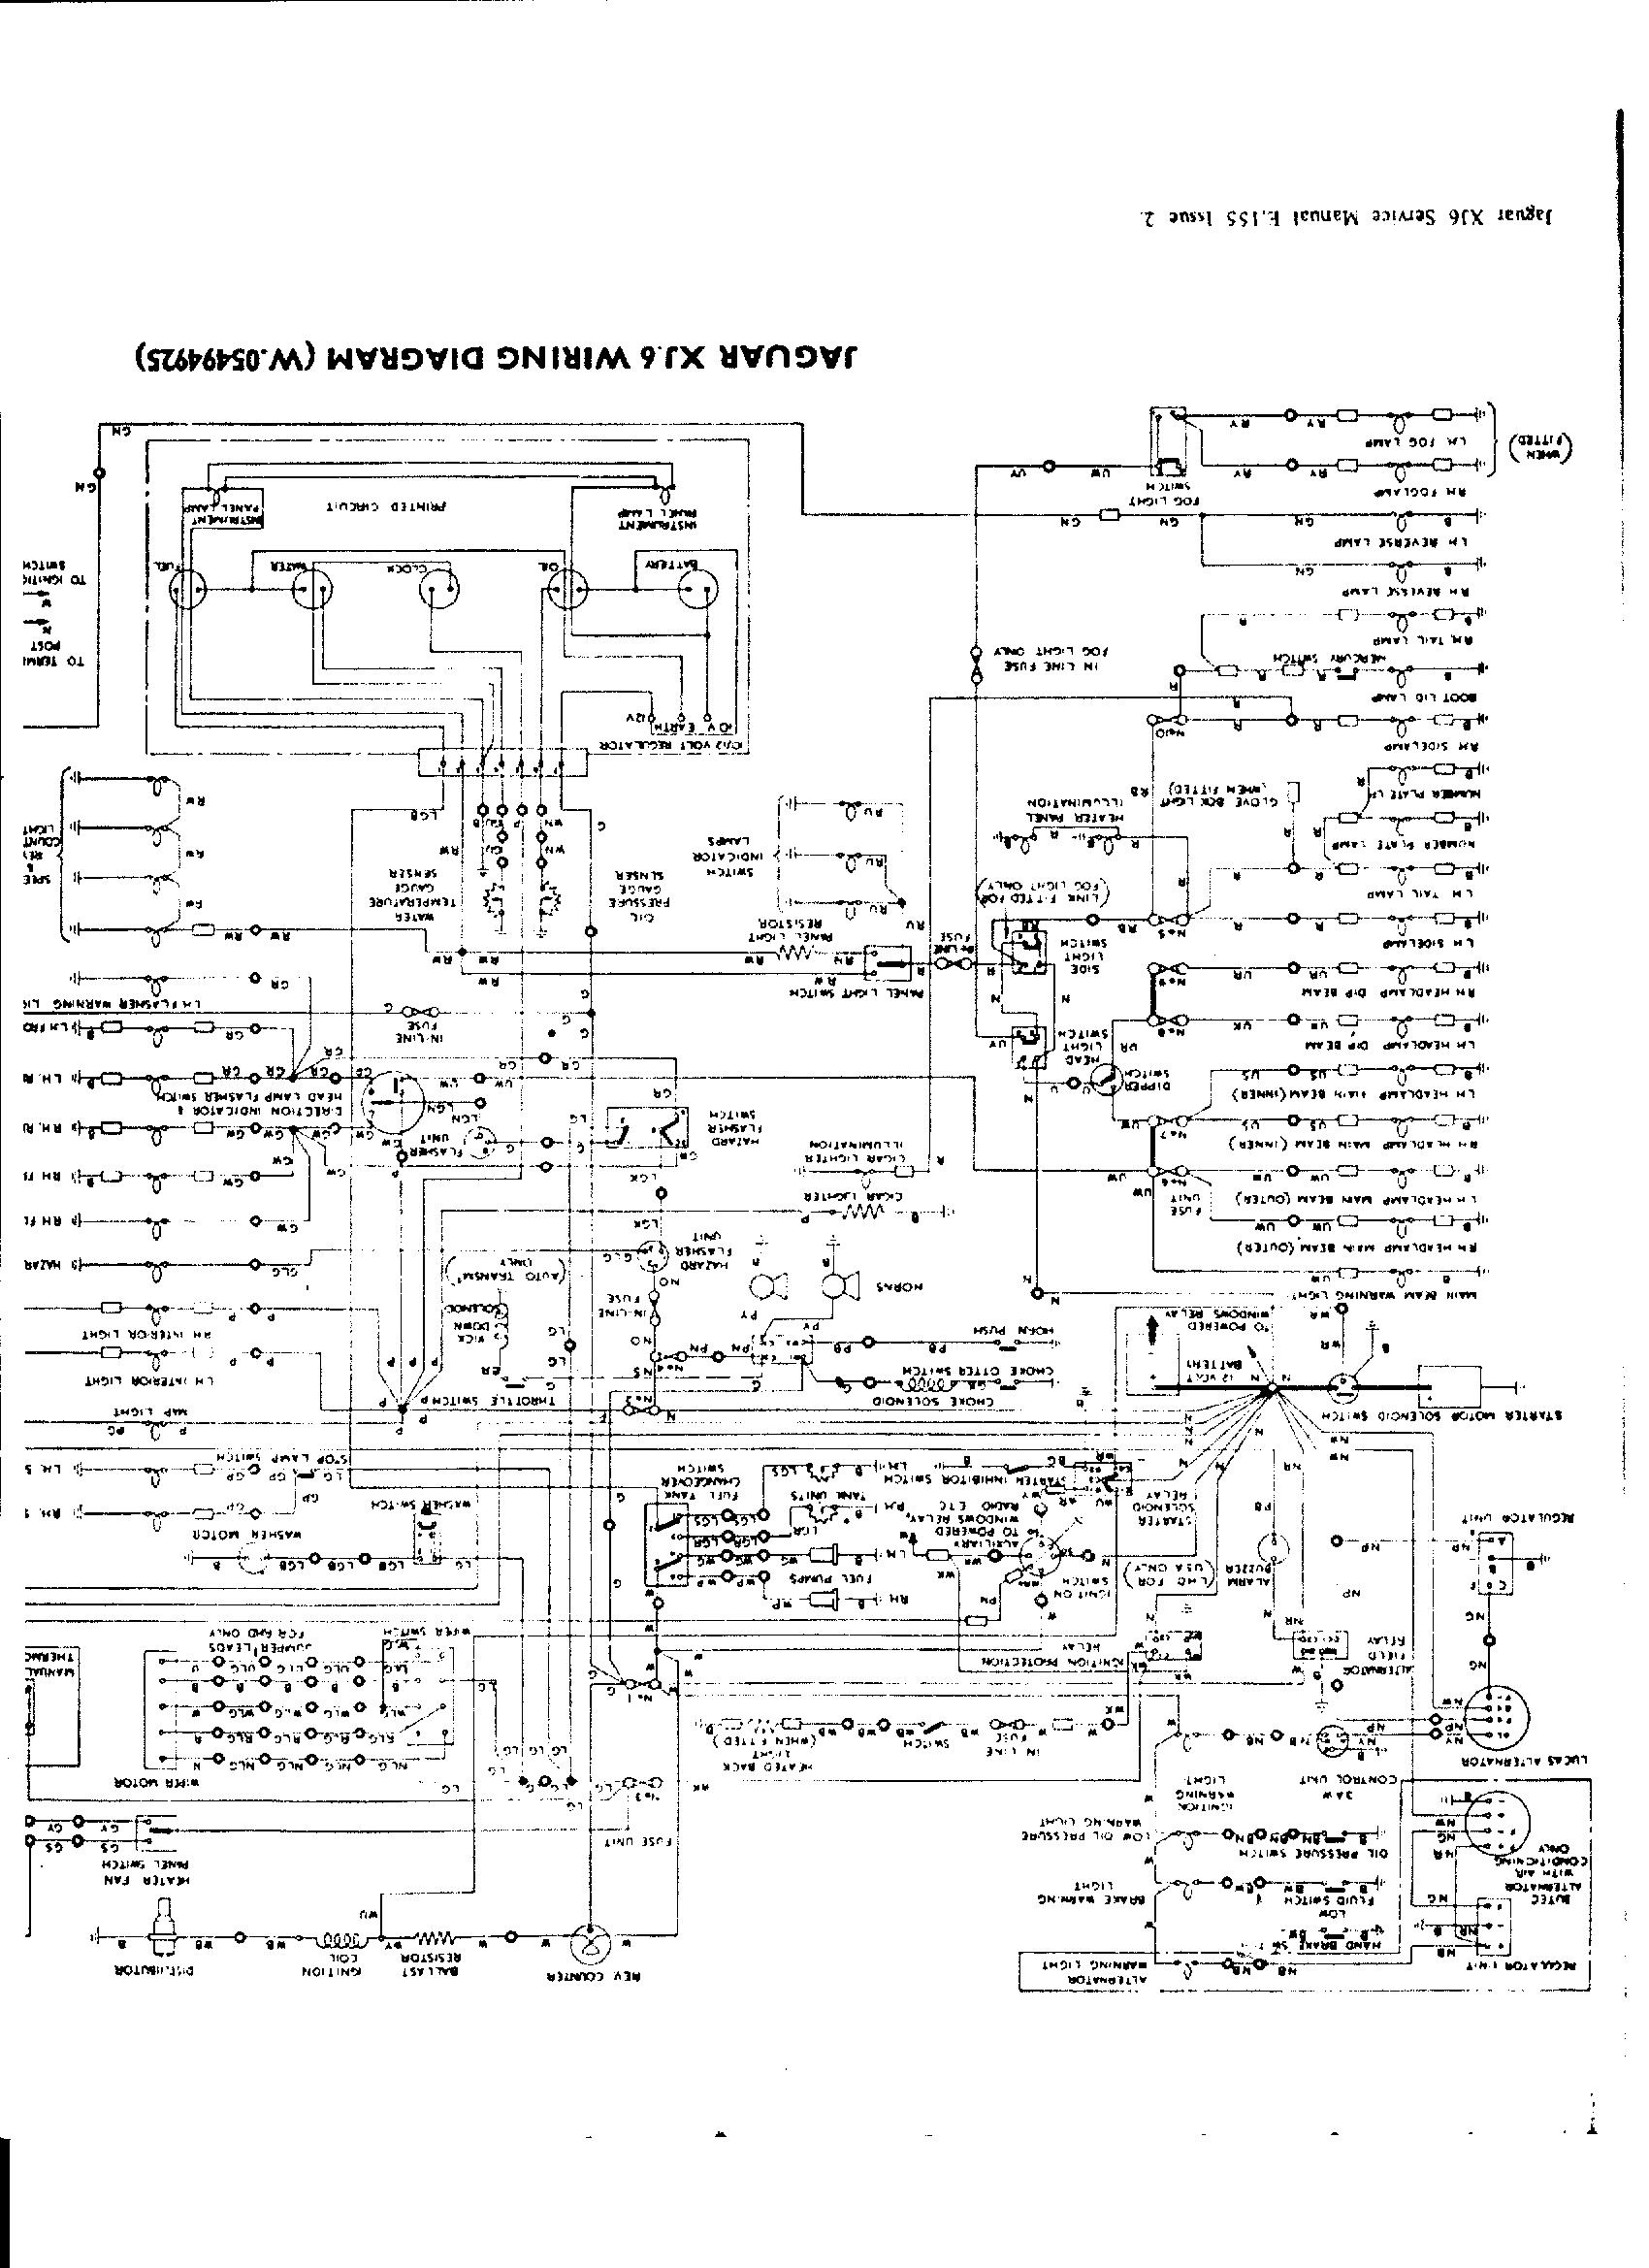 bobcat 500 series wiring diagram bobcat s510 wiring